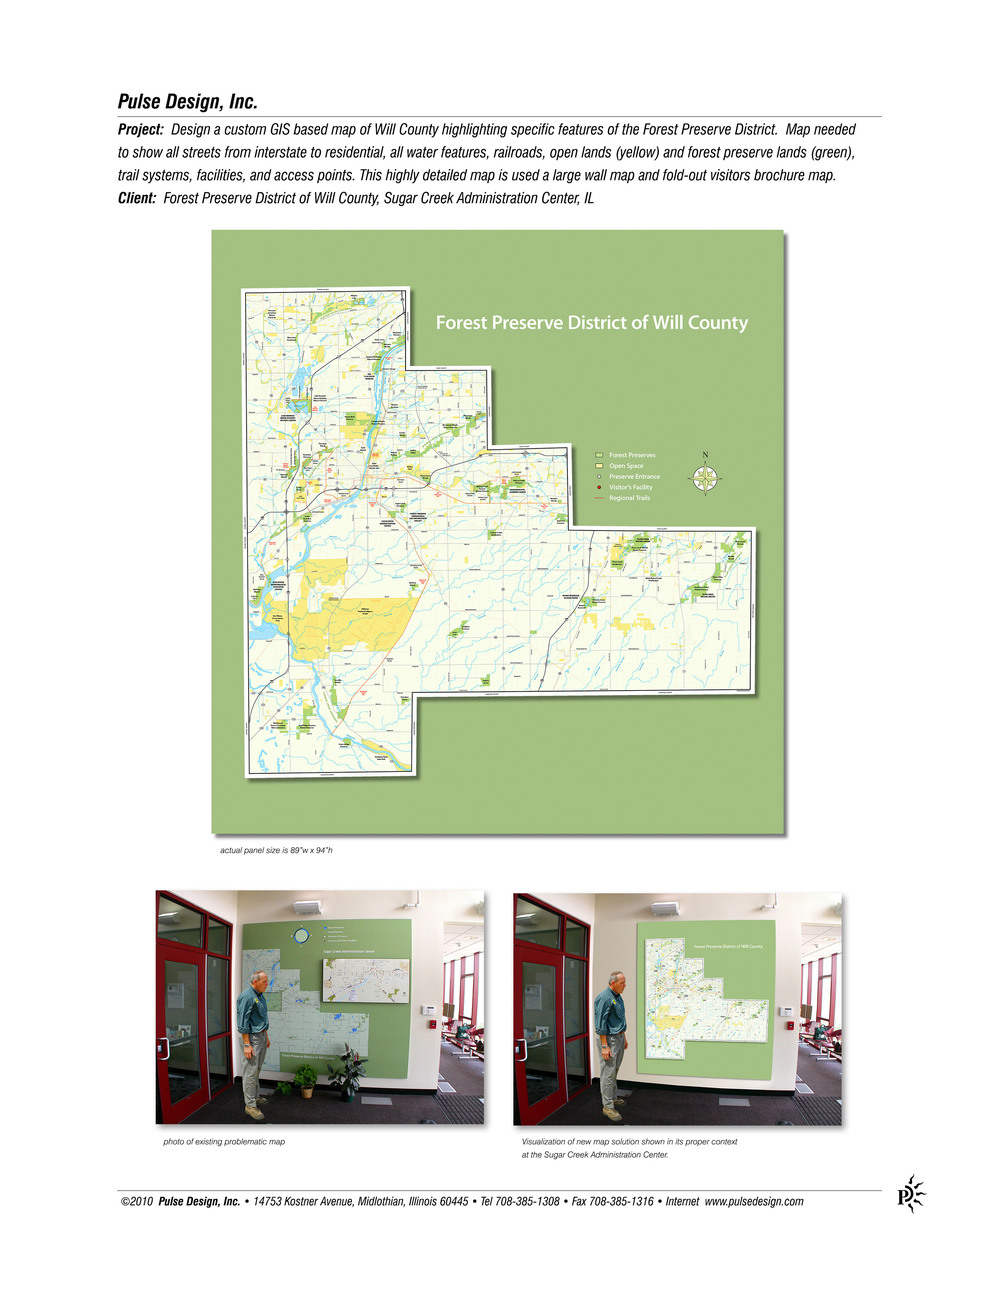 Will-County-Forest-Map-1-Sign-Pulse-Design-Inc.jpg